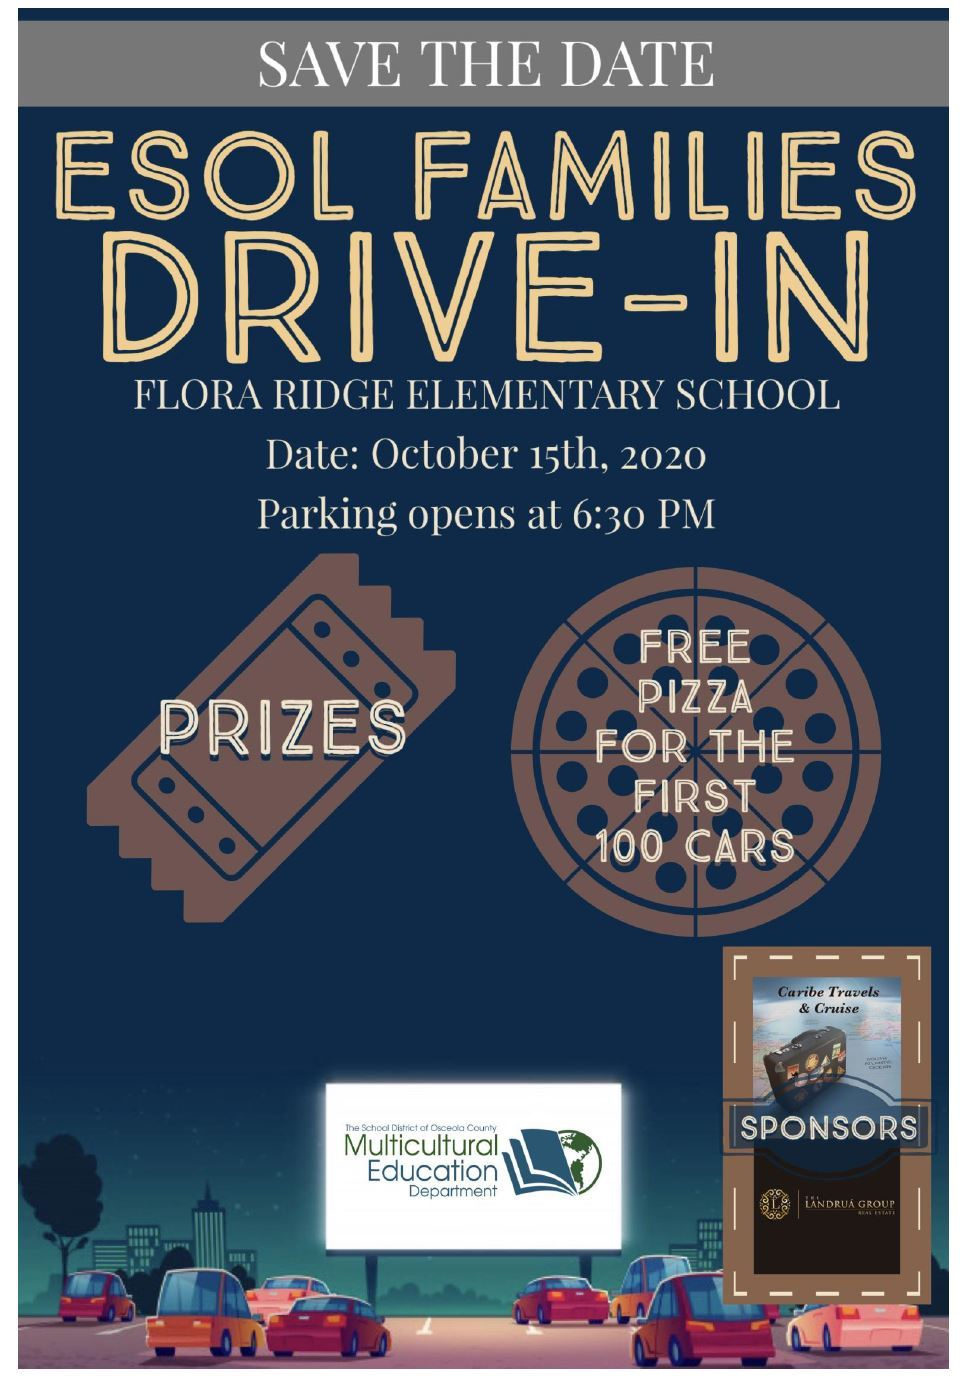 ESOL Families Drive-In